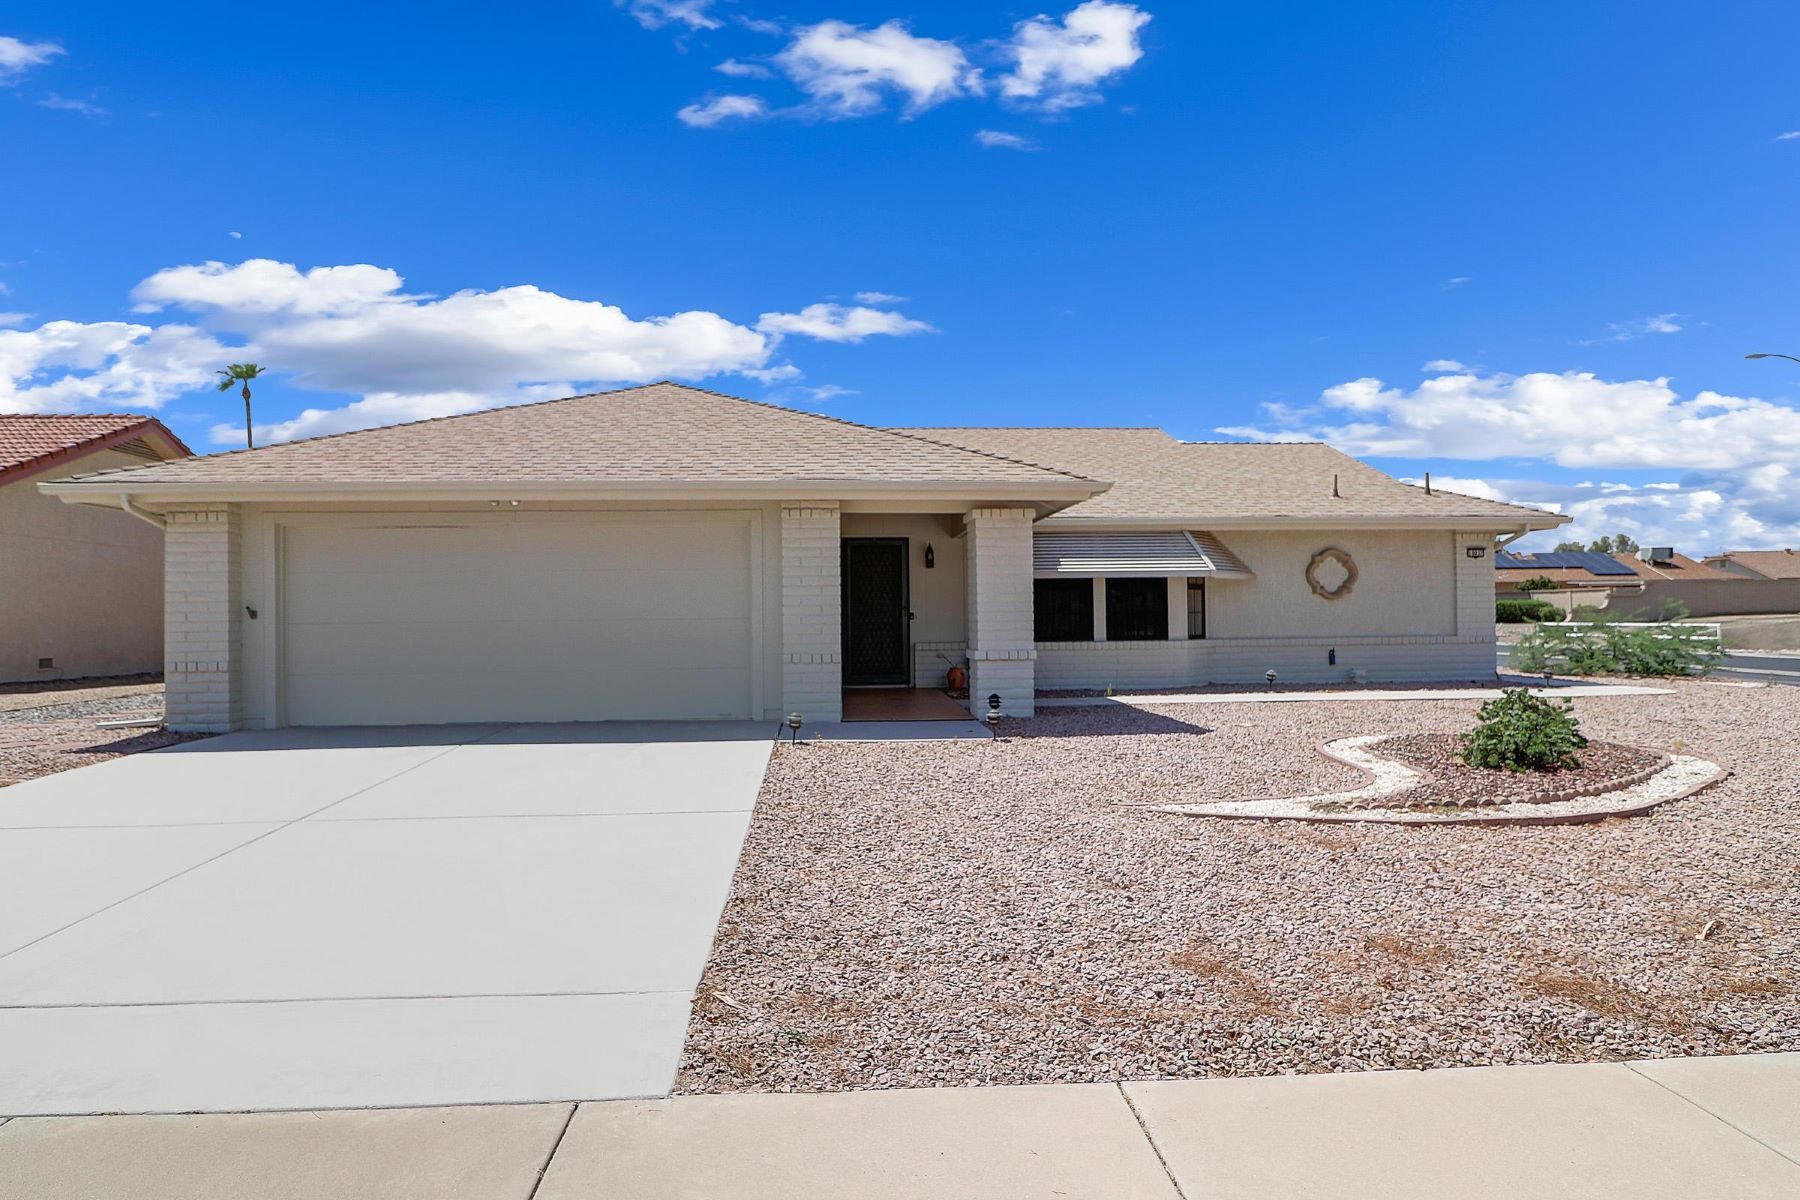 Single Family Homes for Active at Sun City West Model: 18032 N 136th Dr Sun City West, Arizona 85375 United States